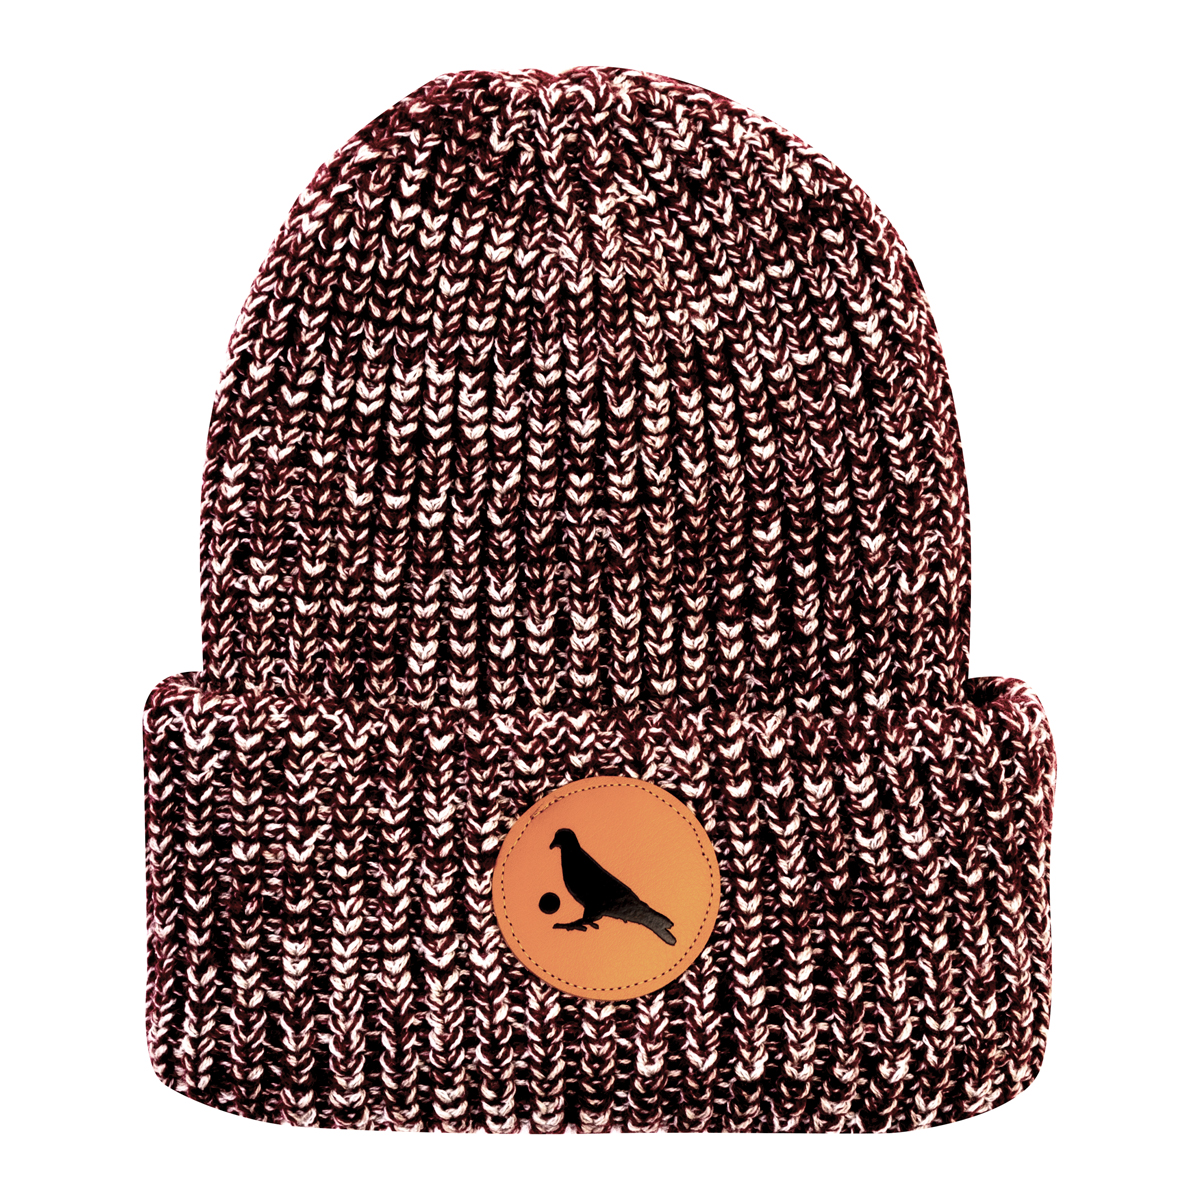 Knit Beanie with Leather Pigeon Ball Patch